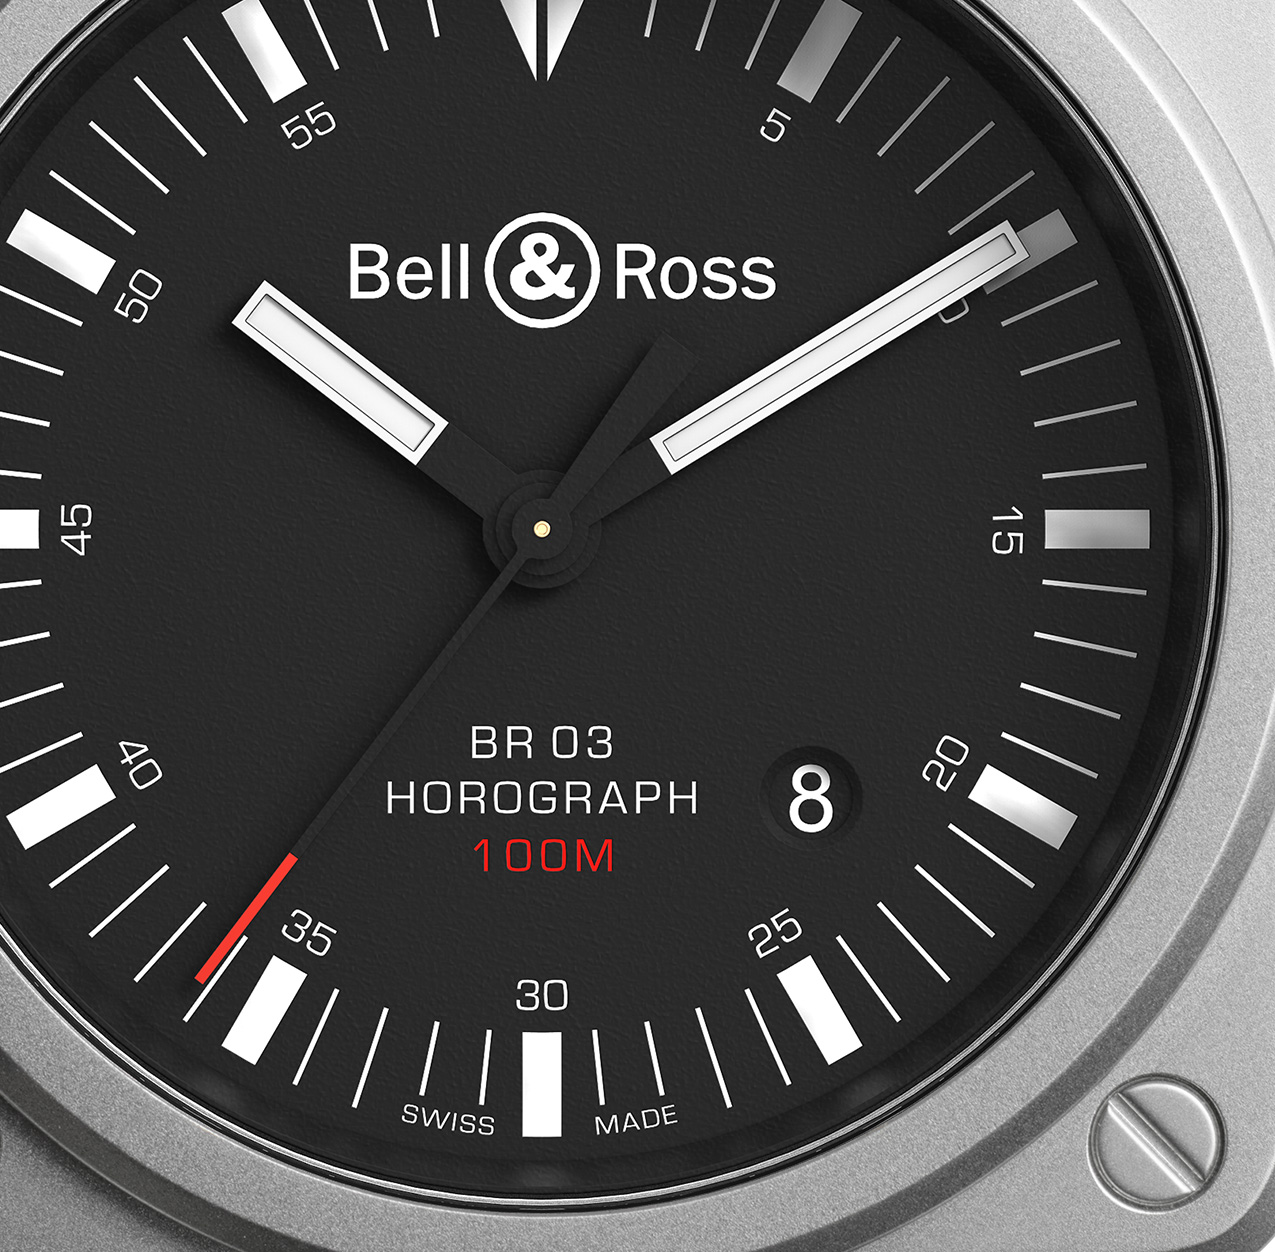 br03-horograph-focus